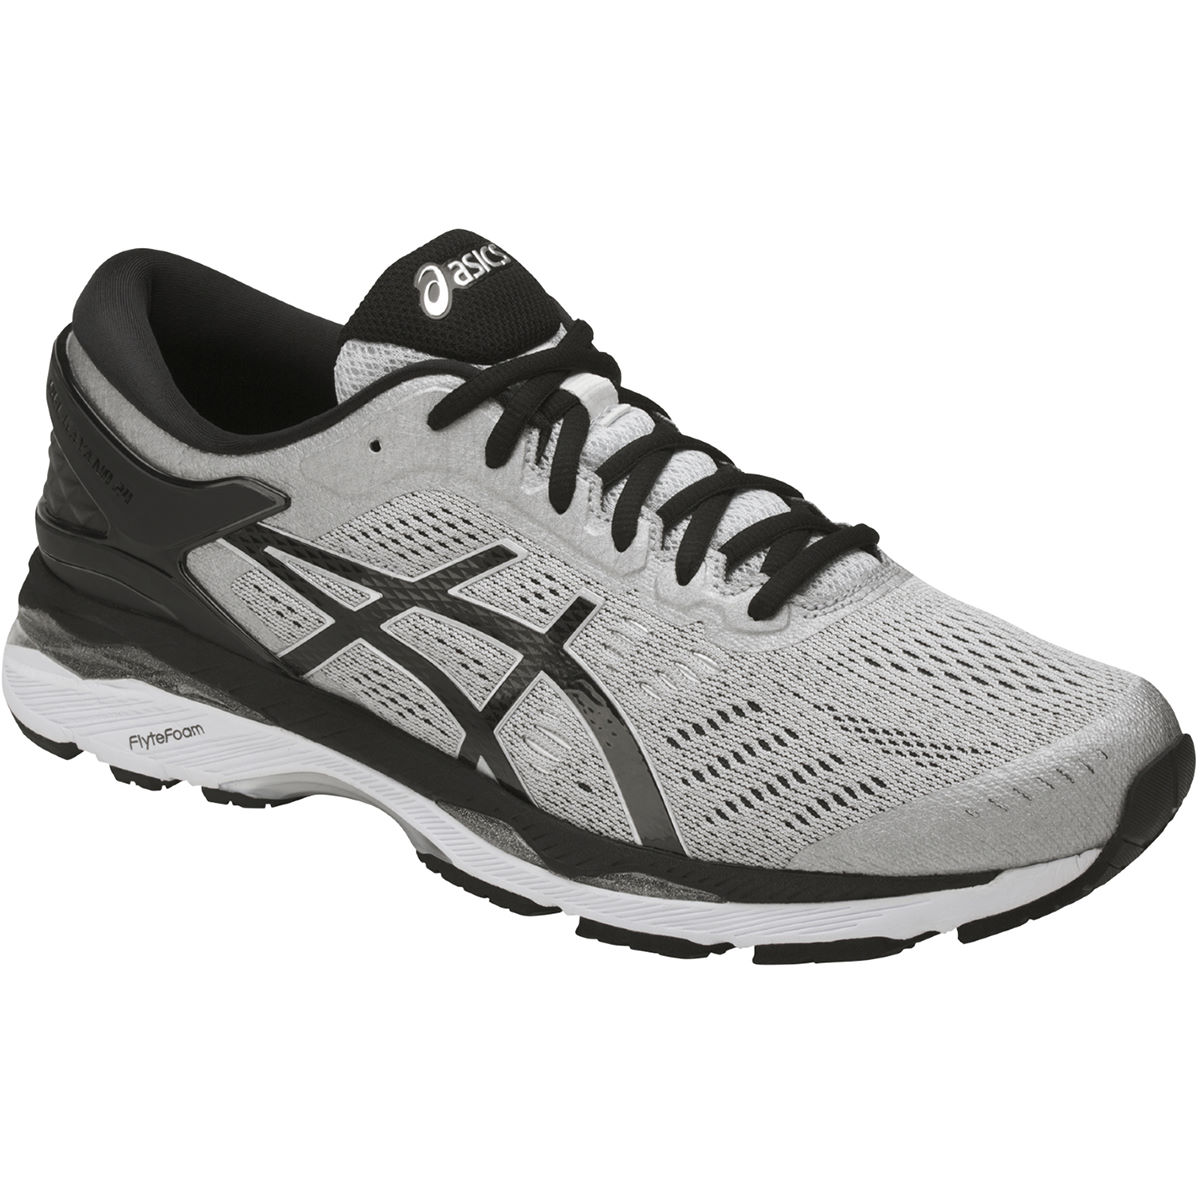 Chaussures Asics Kayano 24 - UK 11 Silver/Black/Mid Gre